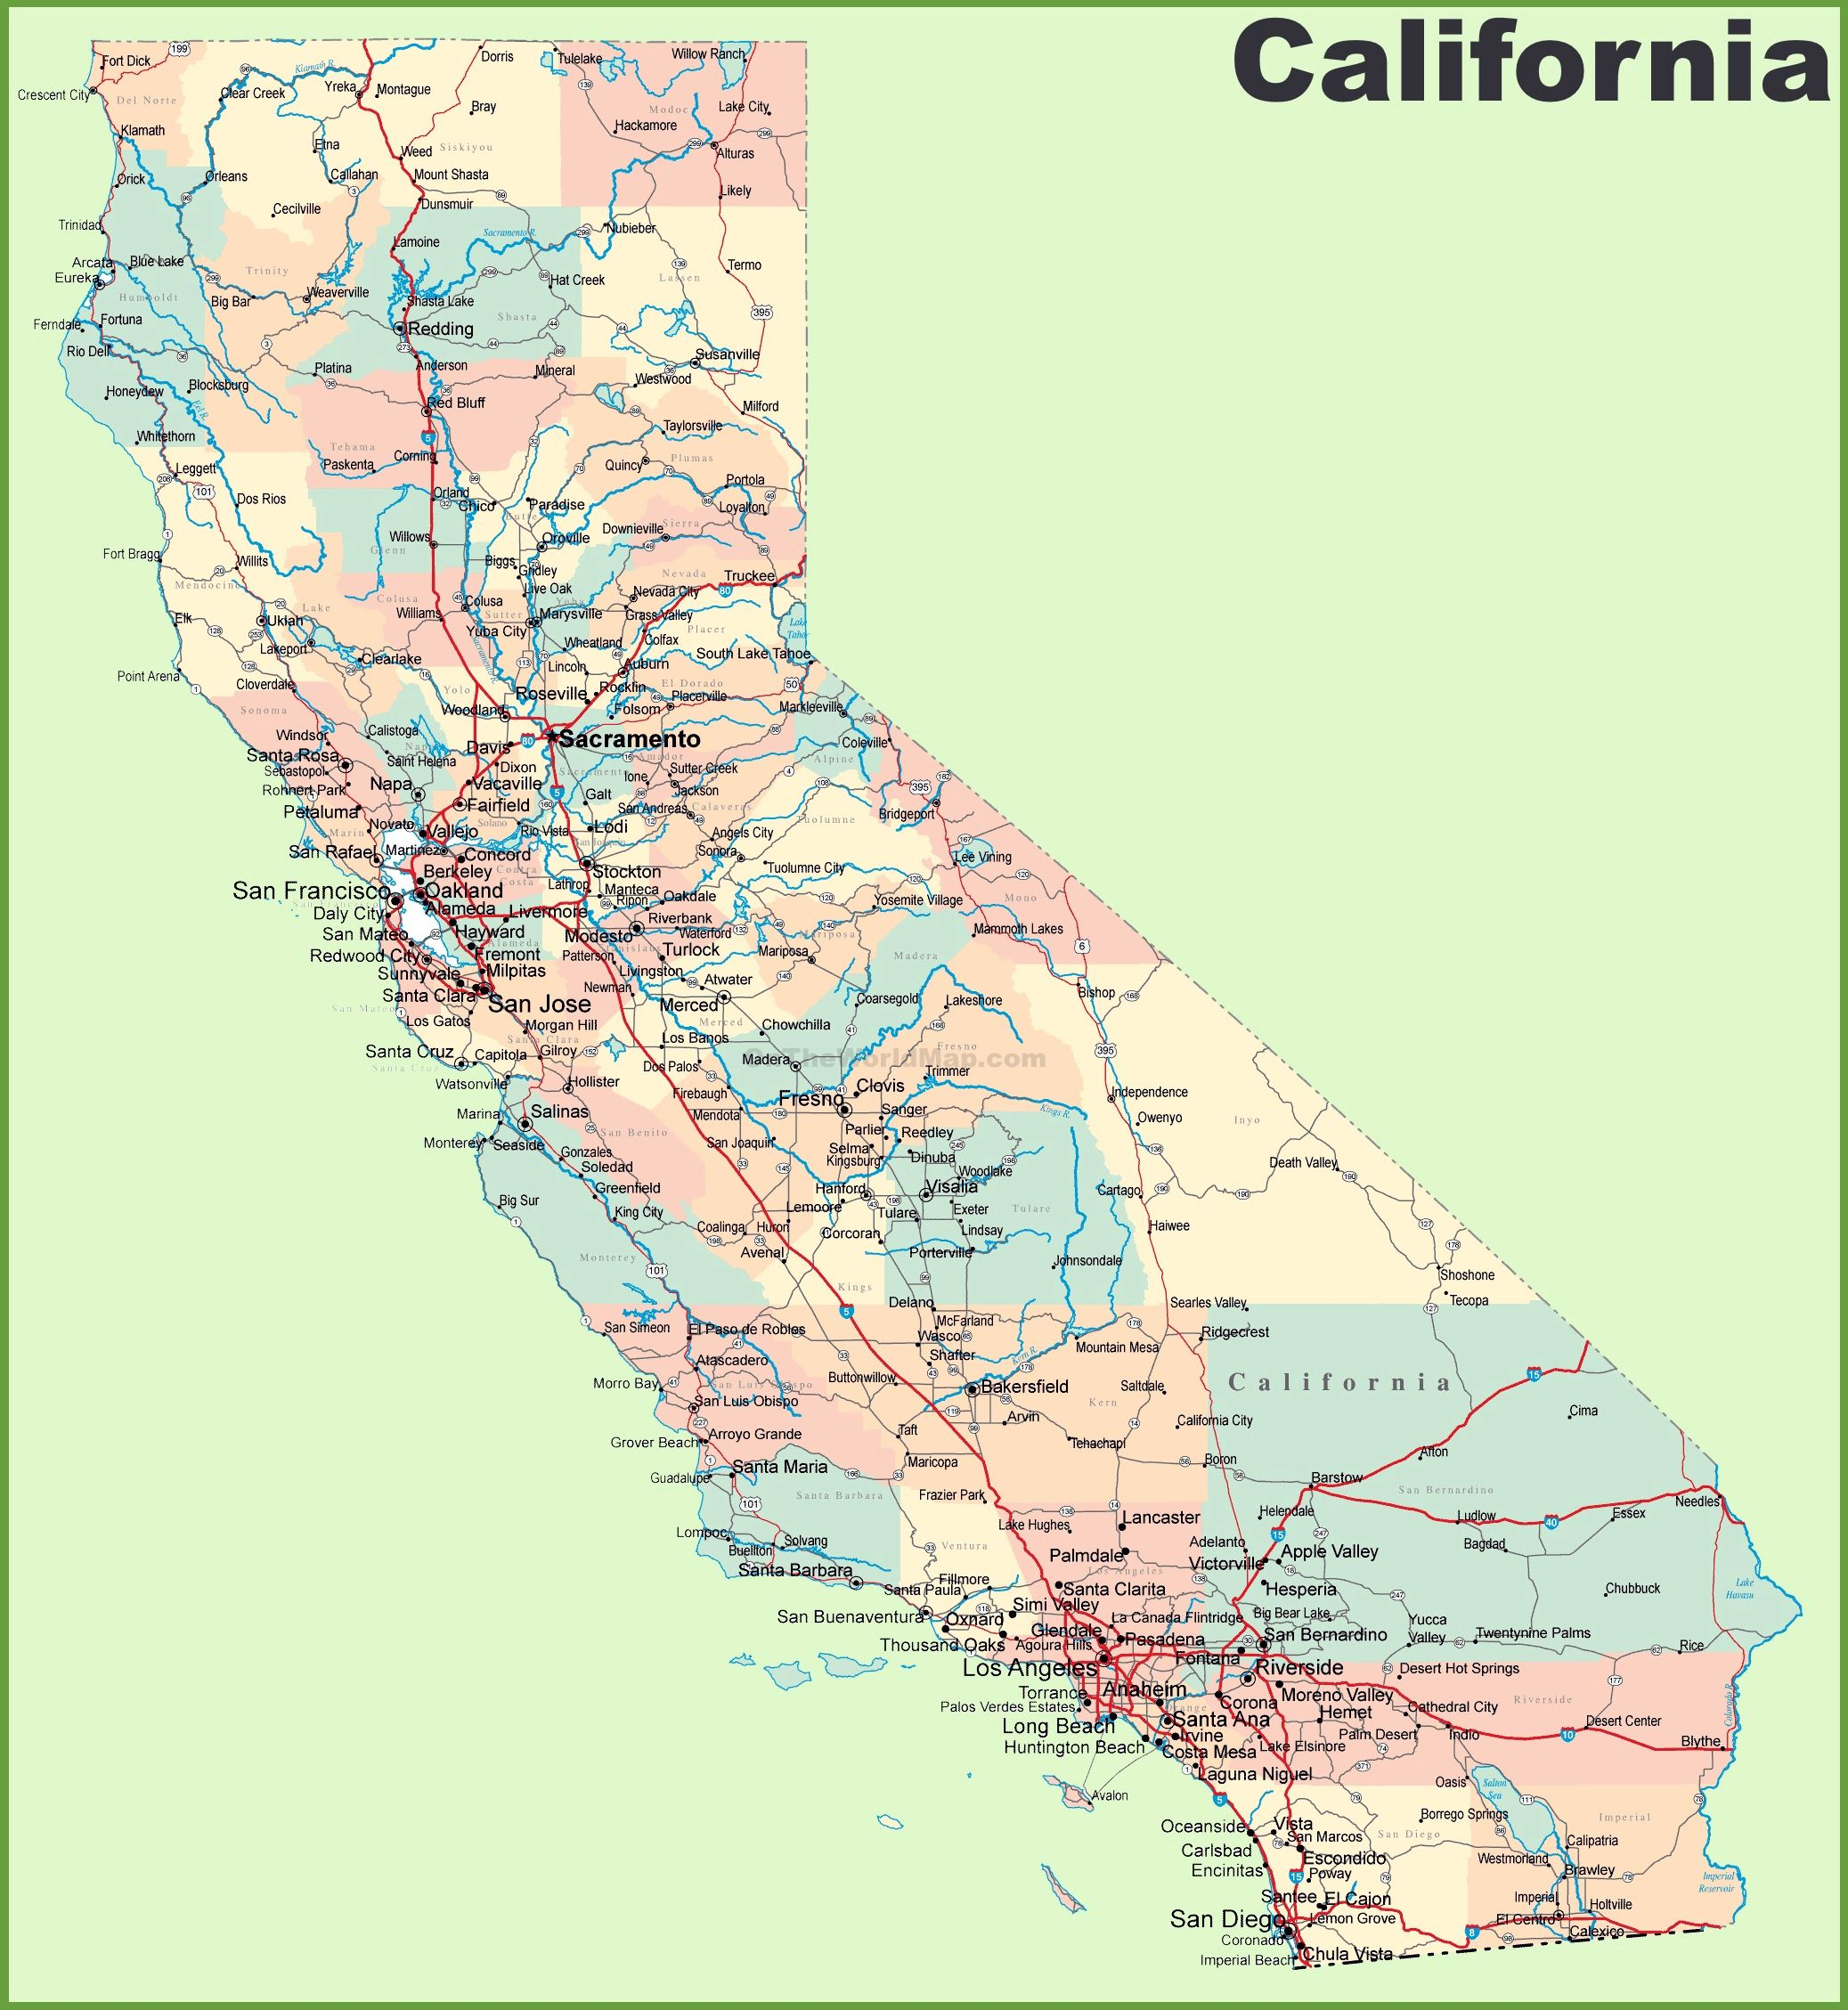 Large California Maps For Free Download And Print | High-Resolution - Show Map Of California Counties